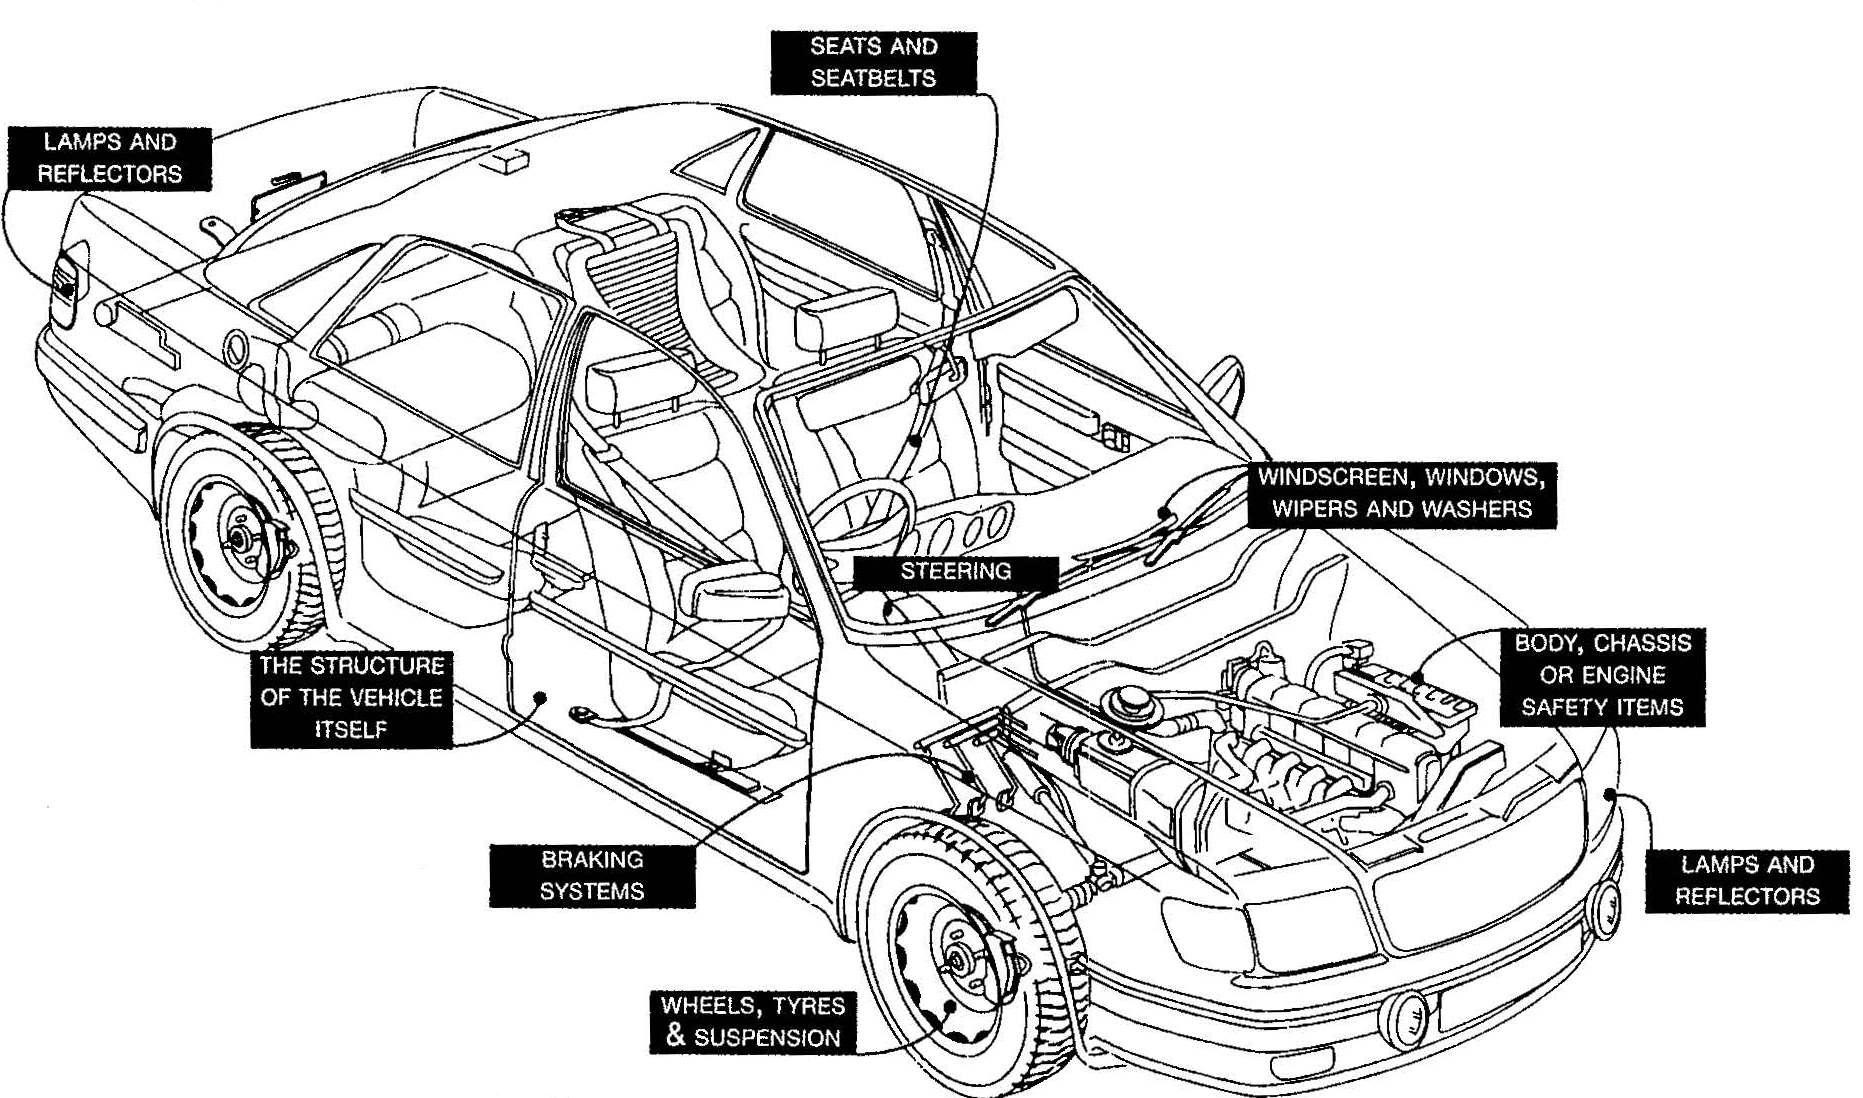 Car Diagram Parts Take Roadworthy Certificate In Melbourne to Additional Your Vehicle Of Car Diagram Parts